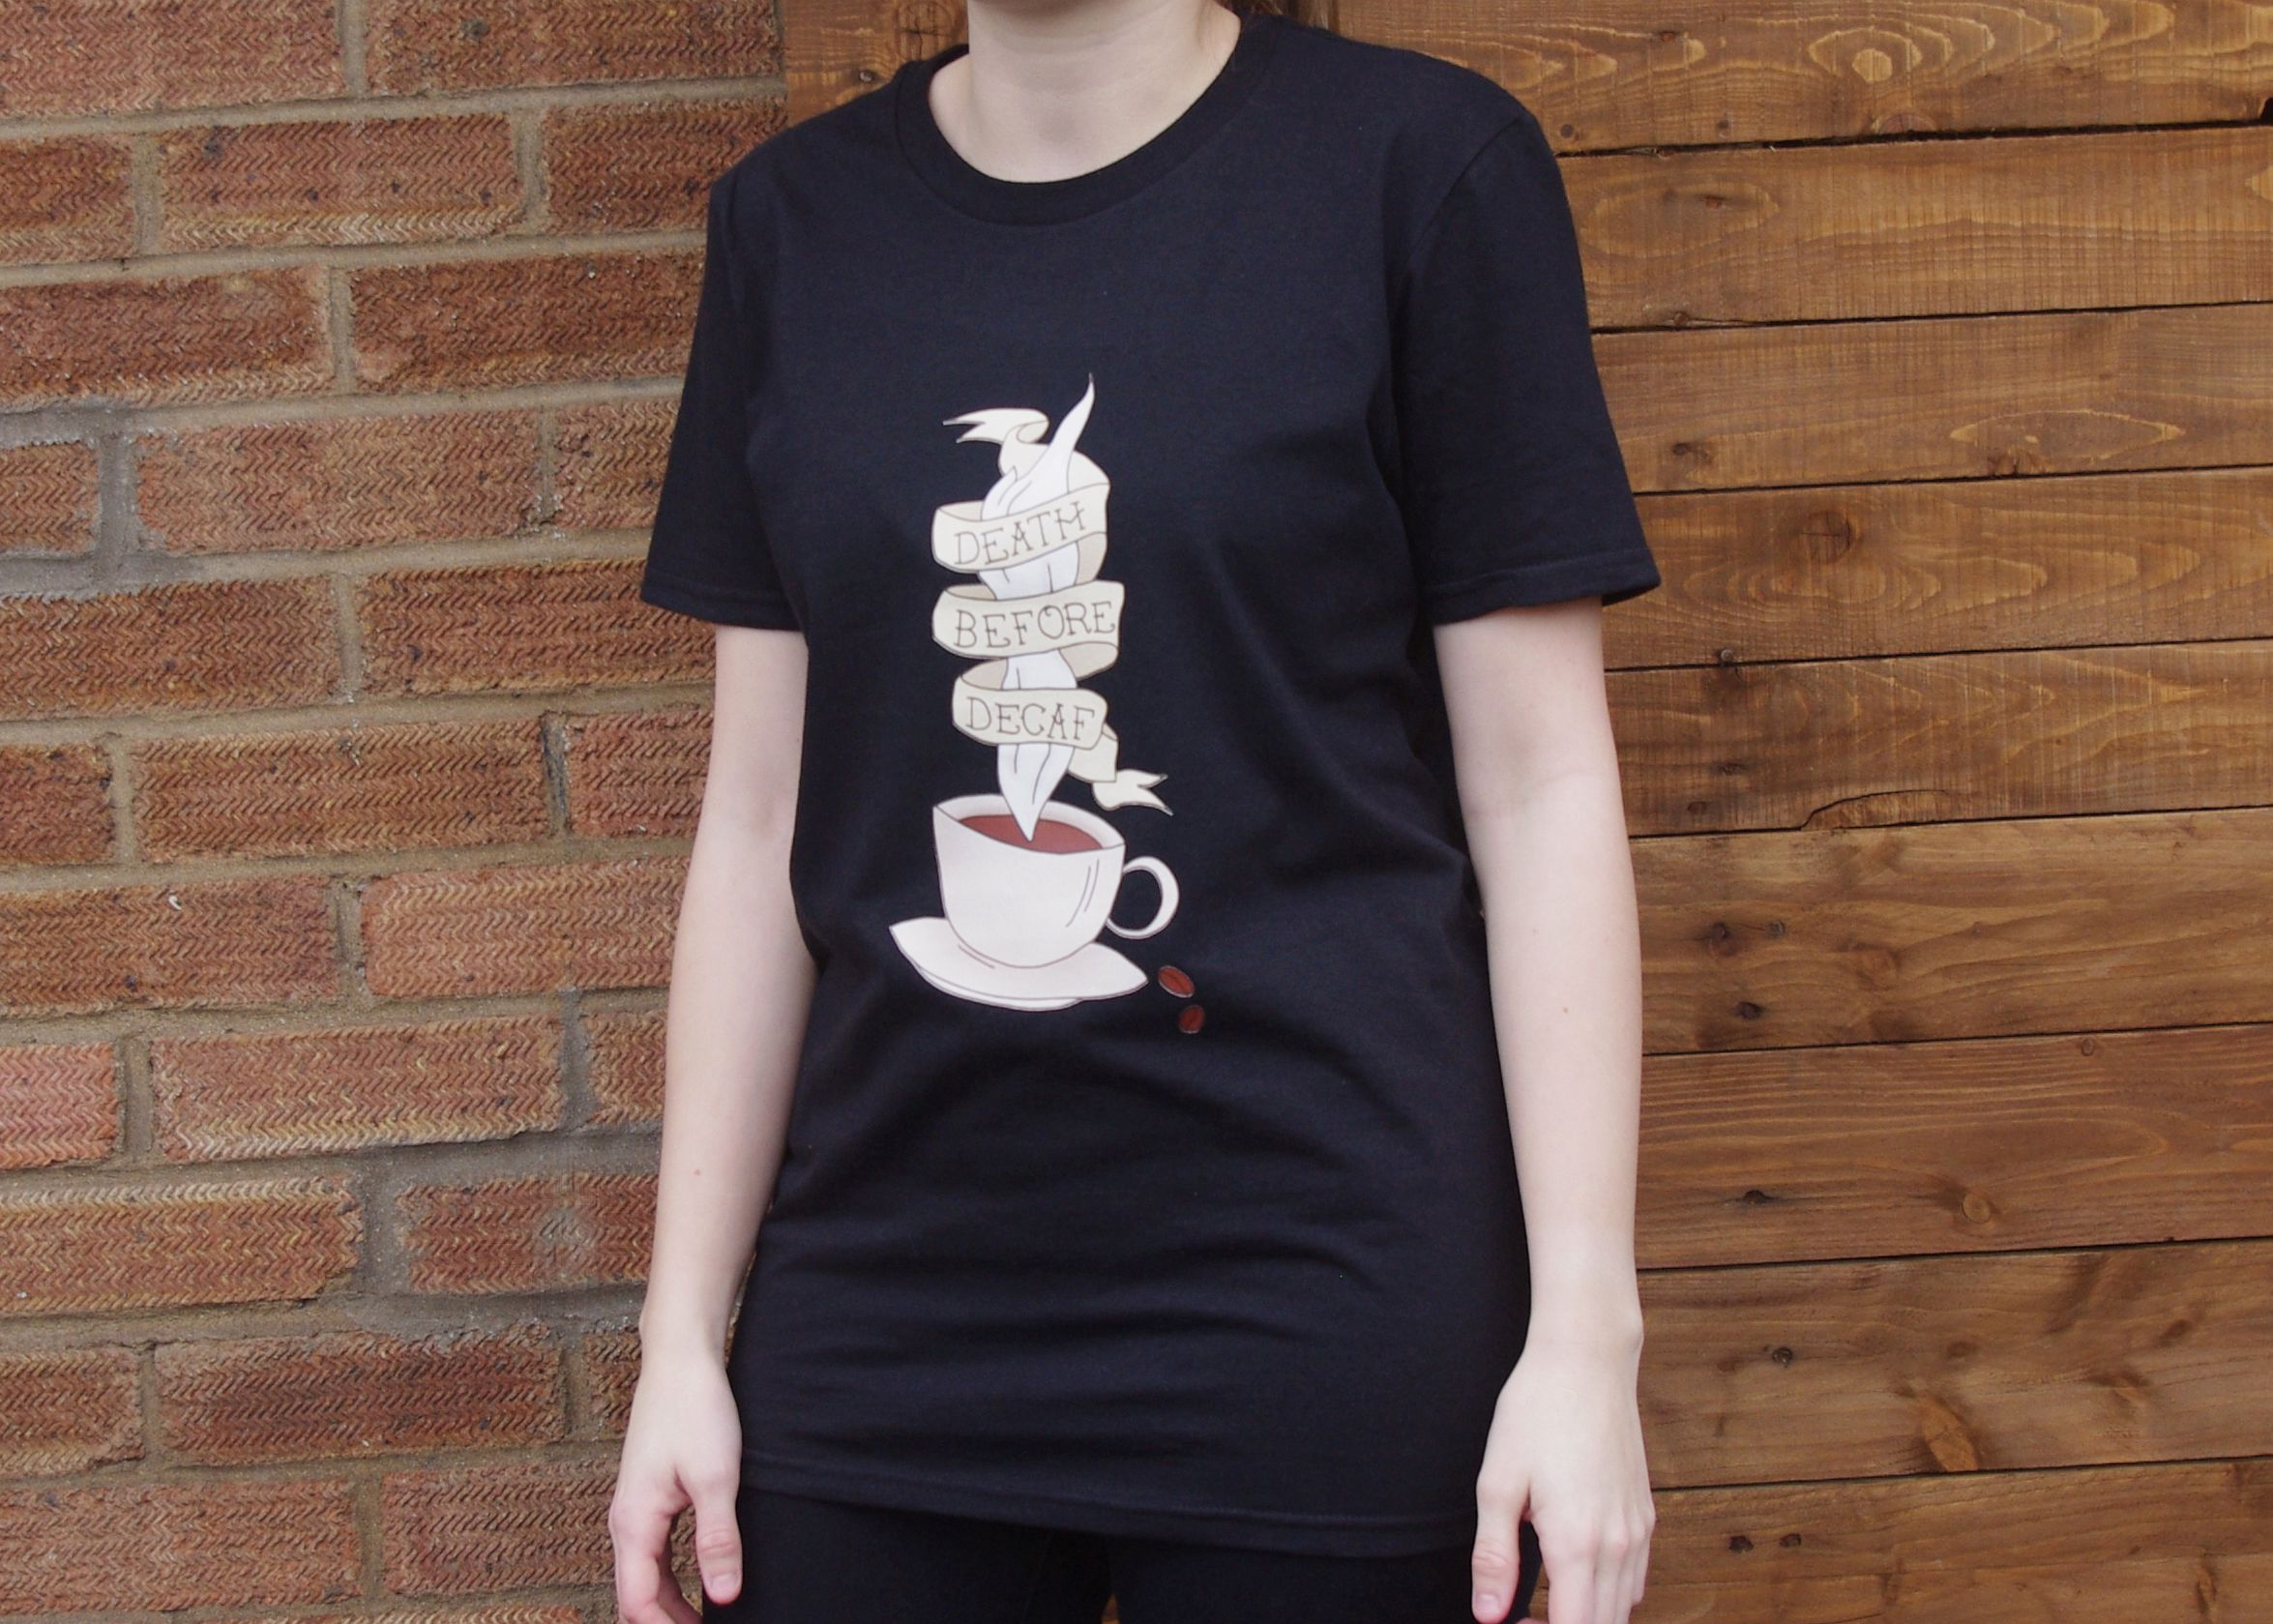 rockabilly decaf illustration unique tee outfit goth gift clothes coffee shirt alternative tattoo clothing